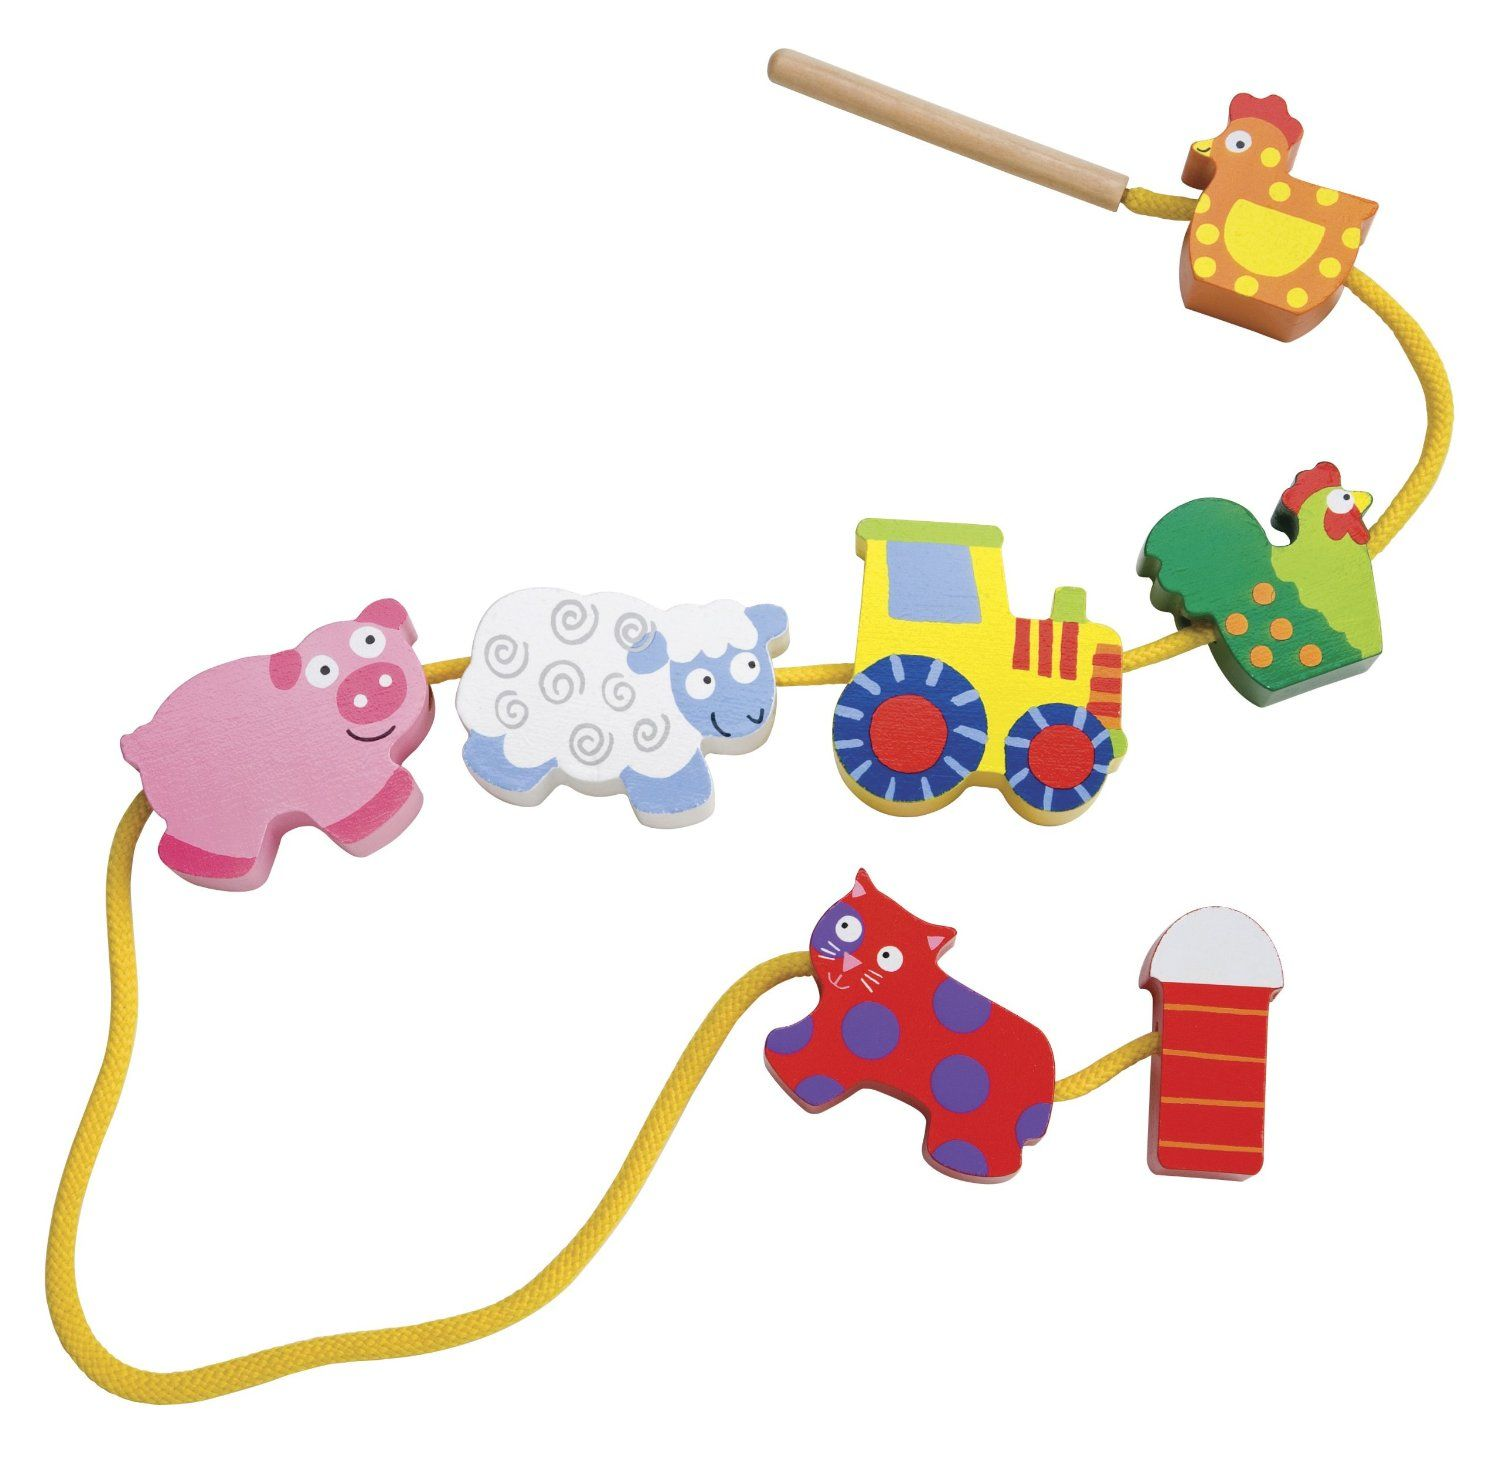 ALEX Toys – Early Learning String A Farm Little Hands 1486F